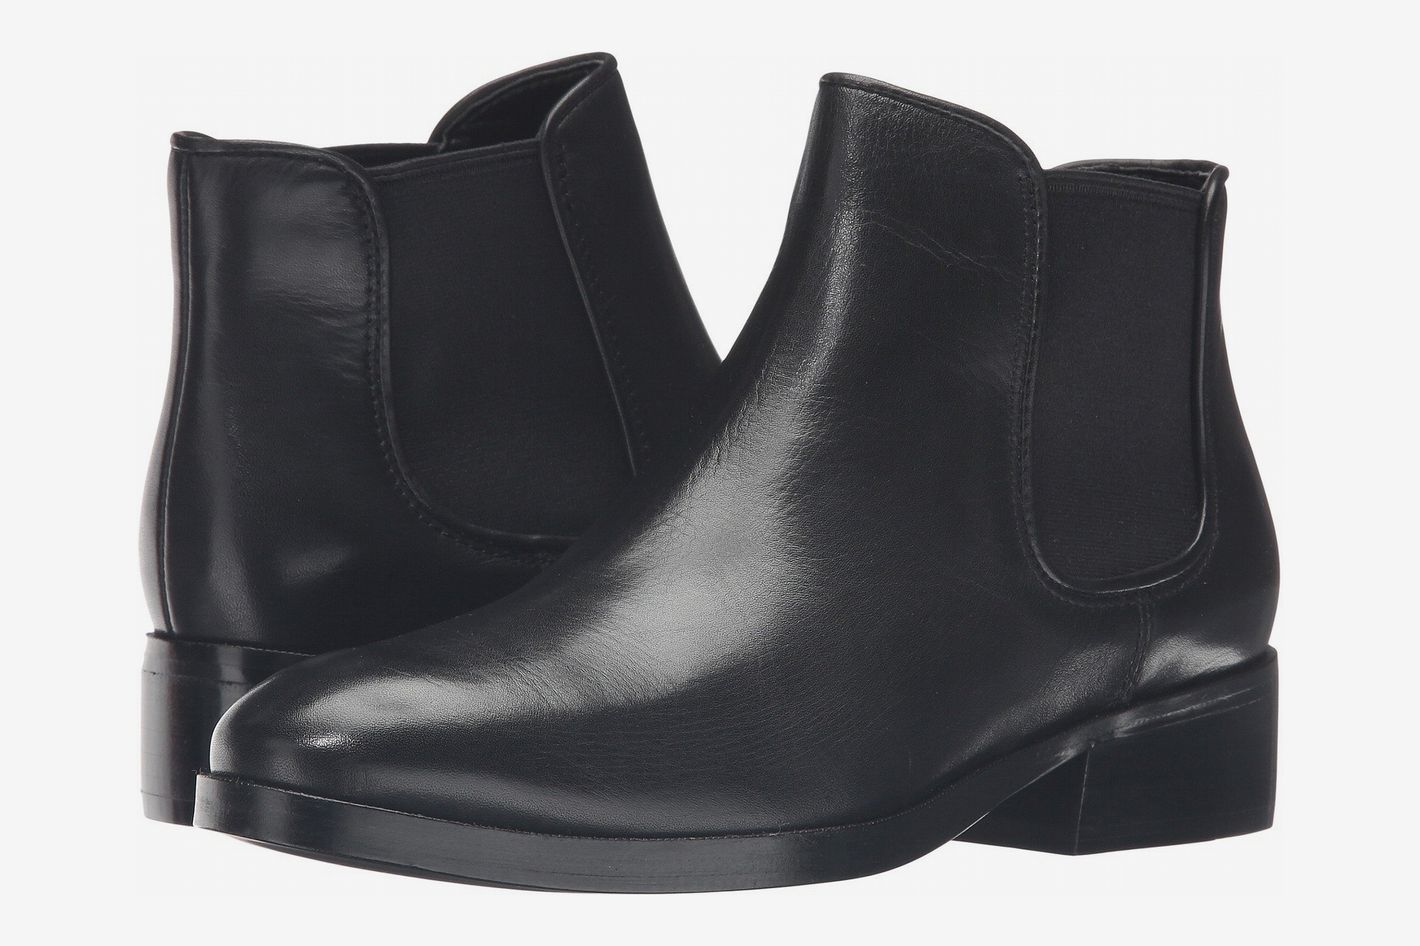 a140e8b56be54 31 Best Chelsea Boots 2018